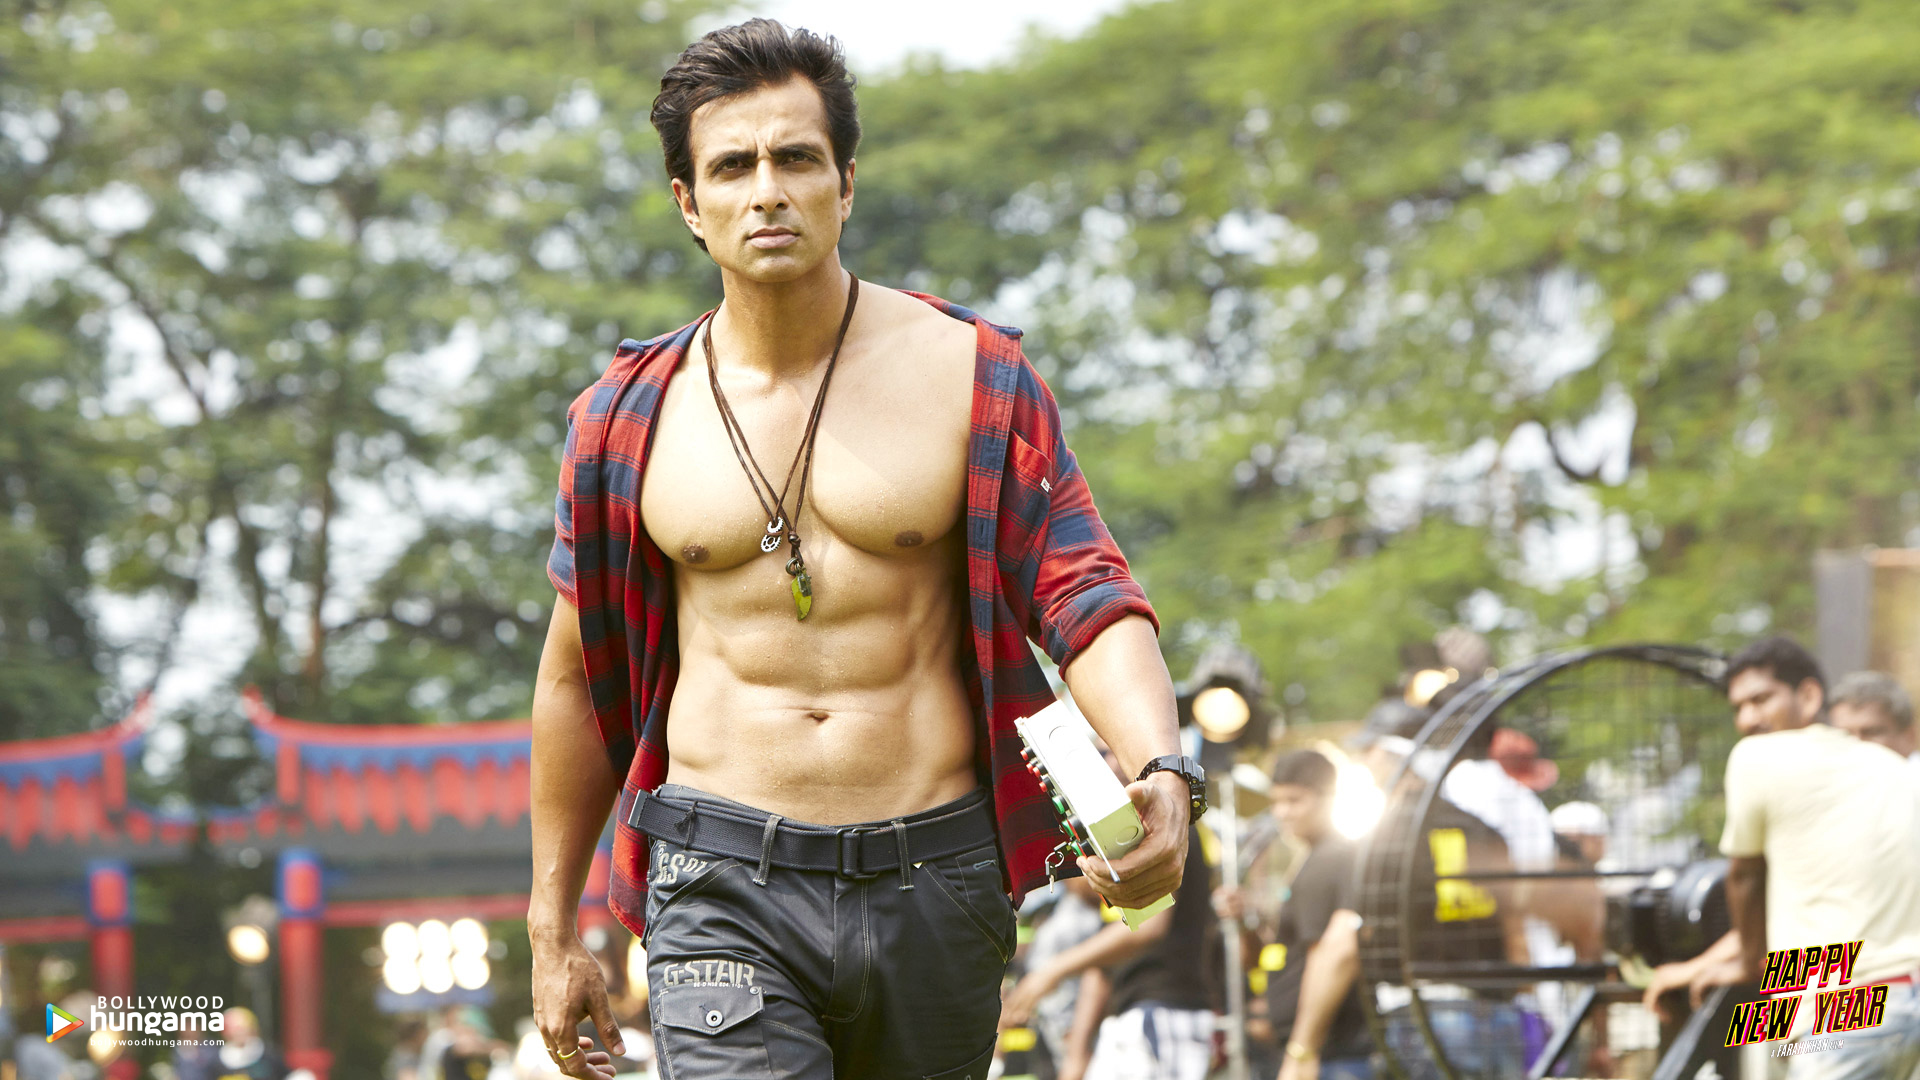 Happy New Year 2014 Wallpapers Happy New Year 14 Bollywood Hungama